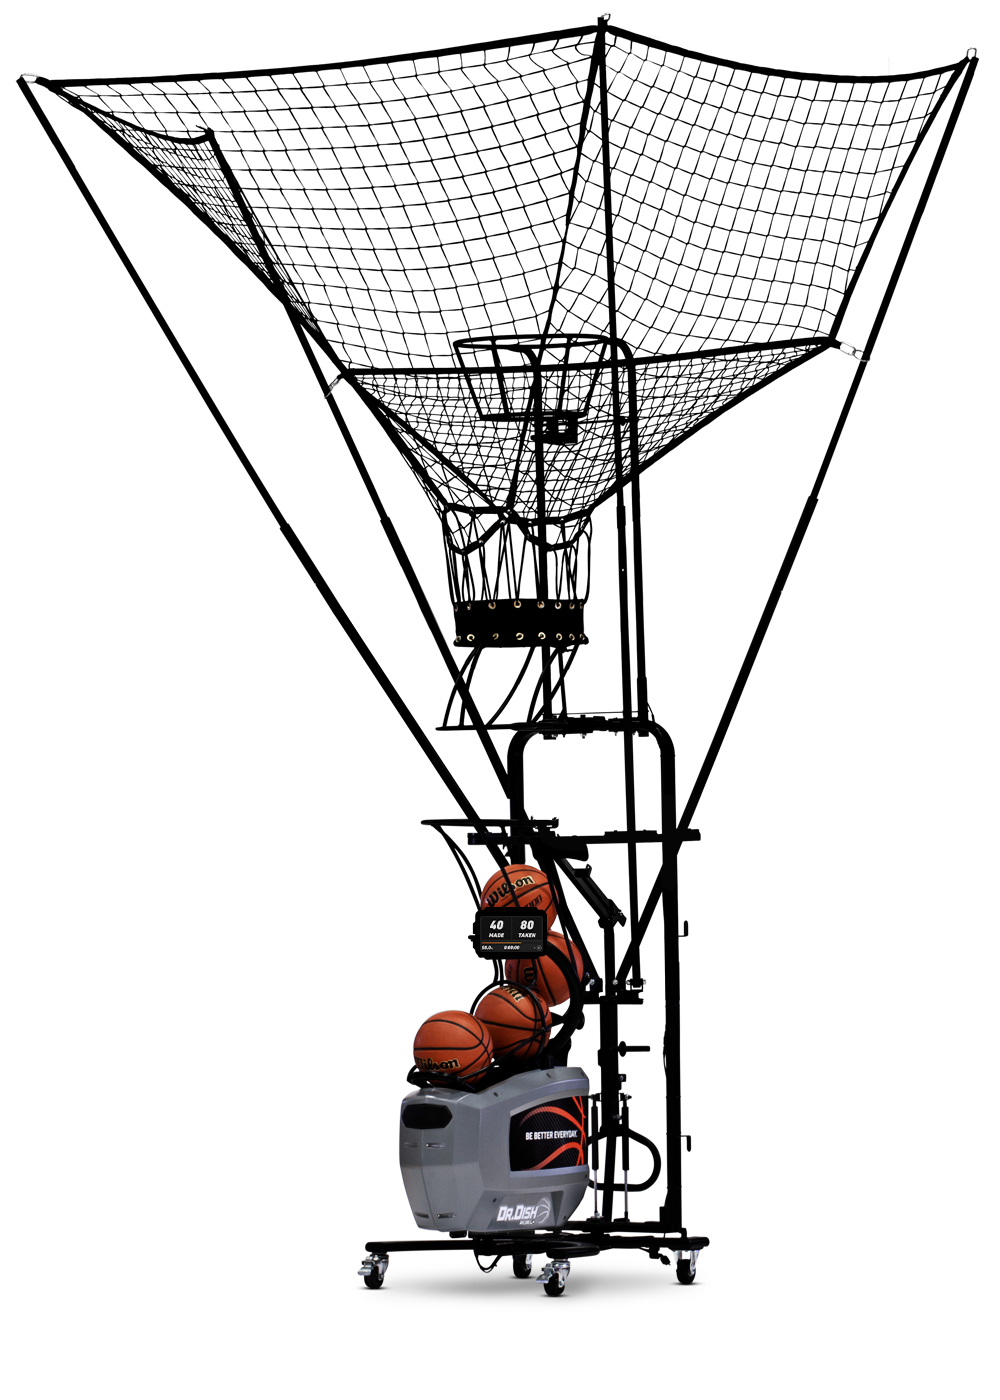 Dr. Dish Rebel+ Basketball Shooting Machine